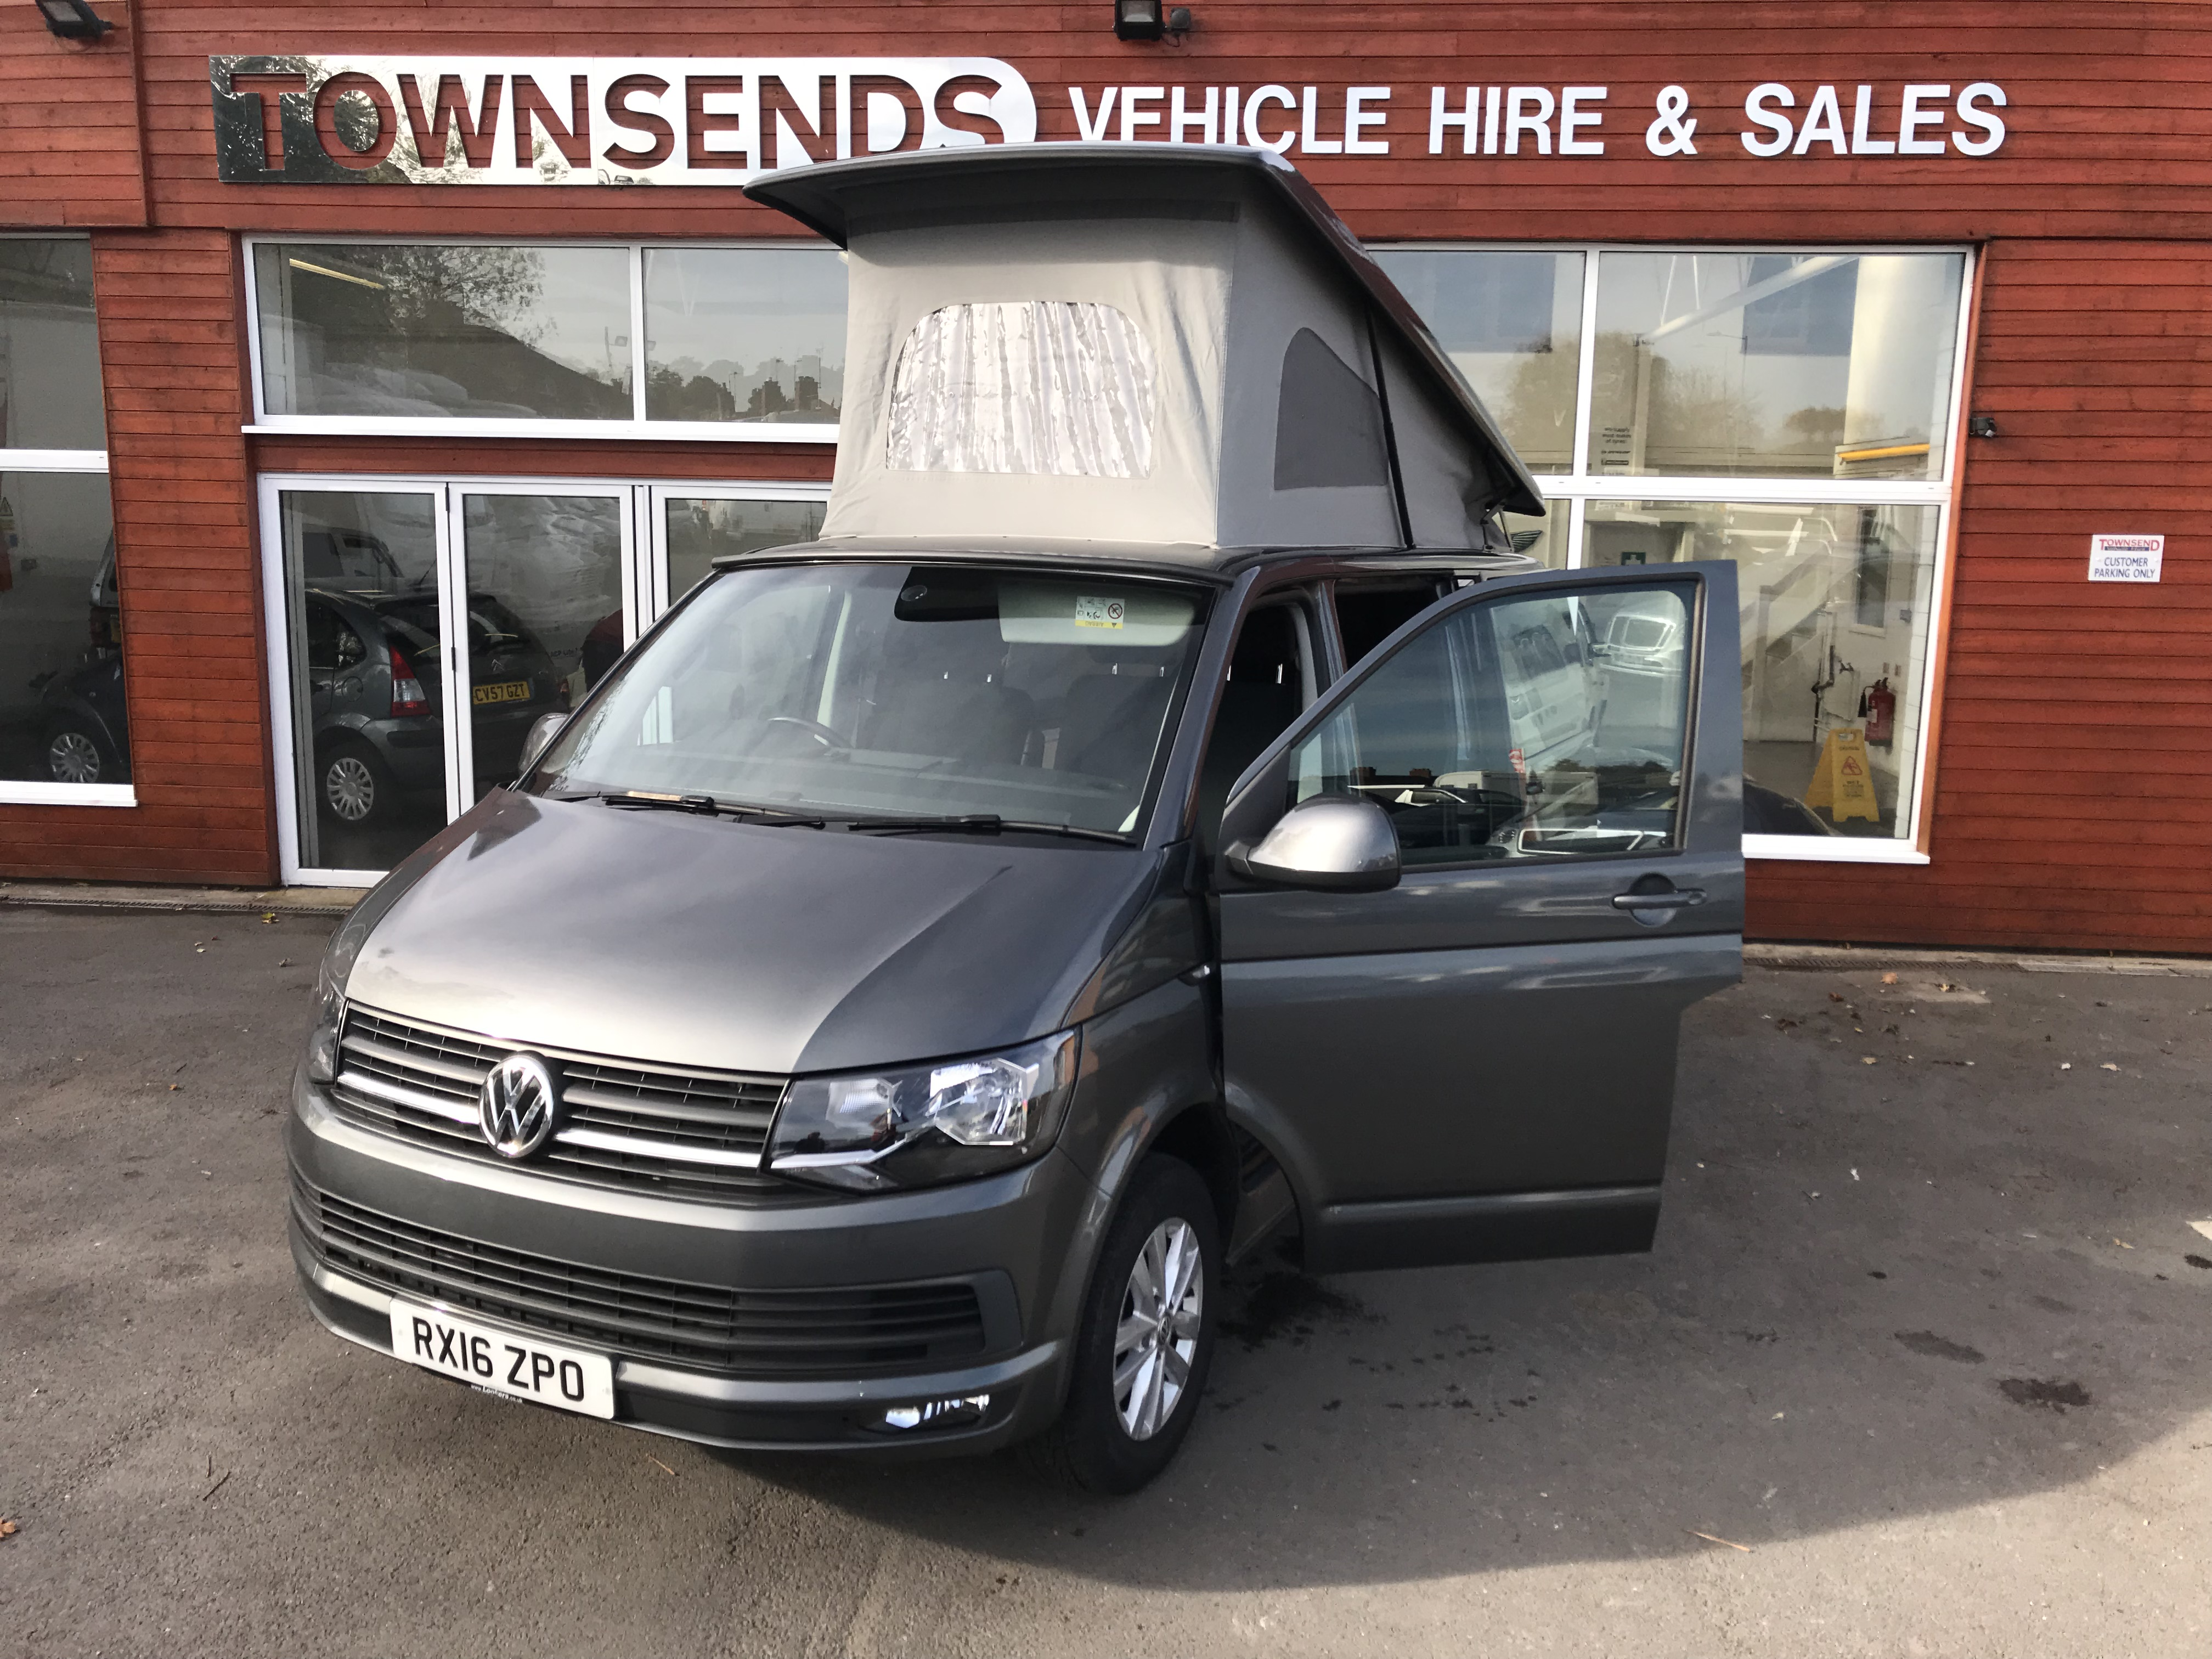 Campervan Hire - Townsends Car & Van Rental, Rugby